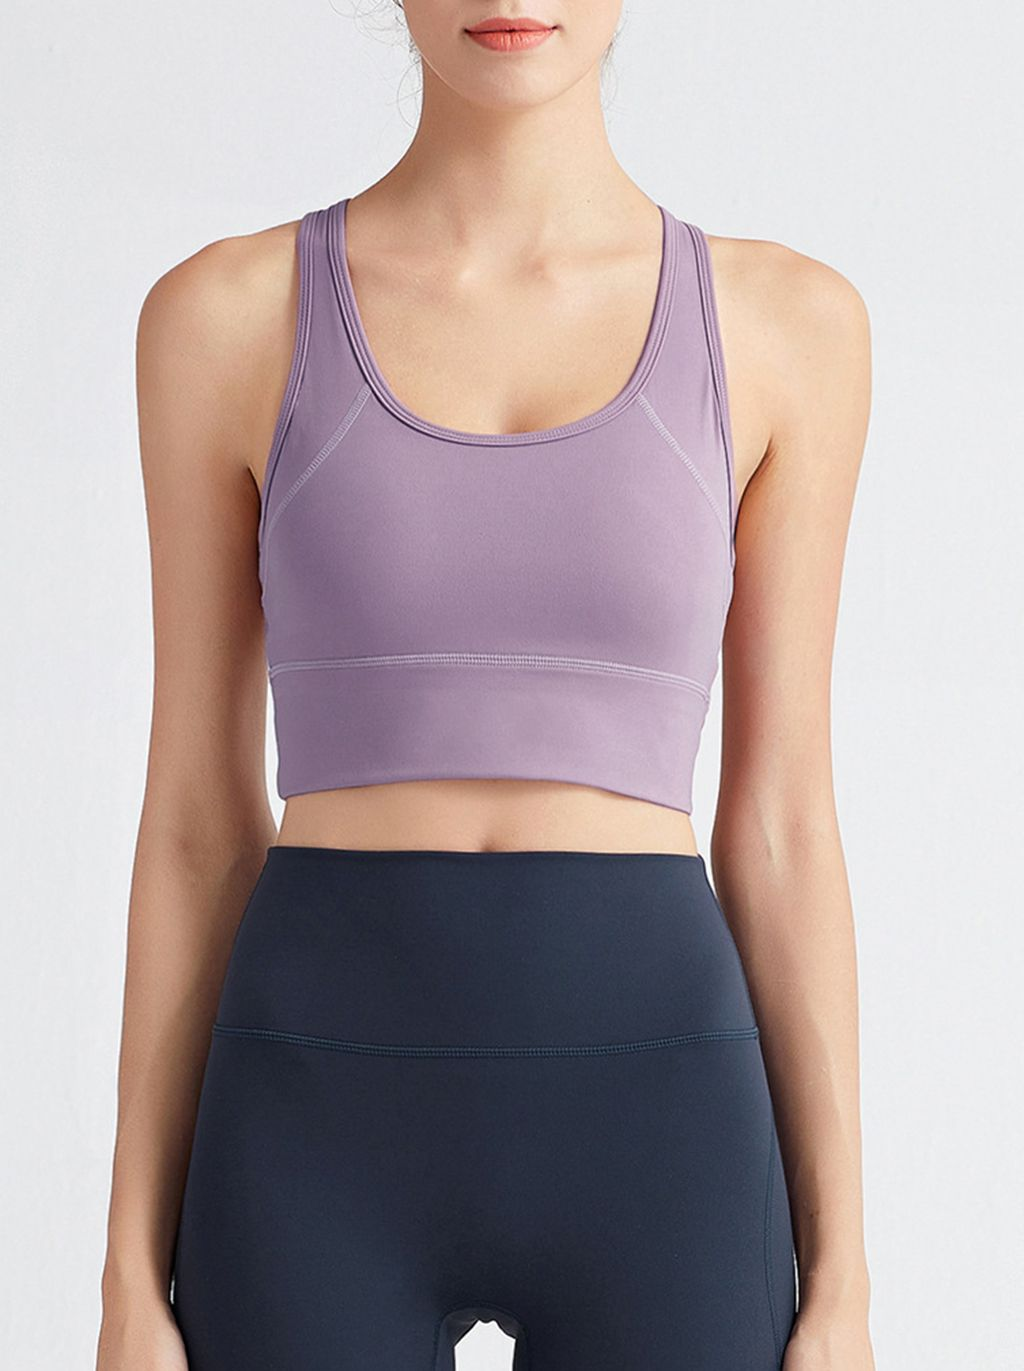 Push Up Sports Bra for women (5)